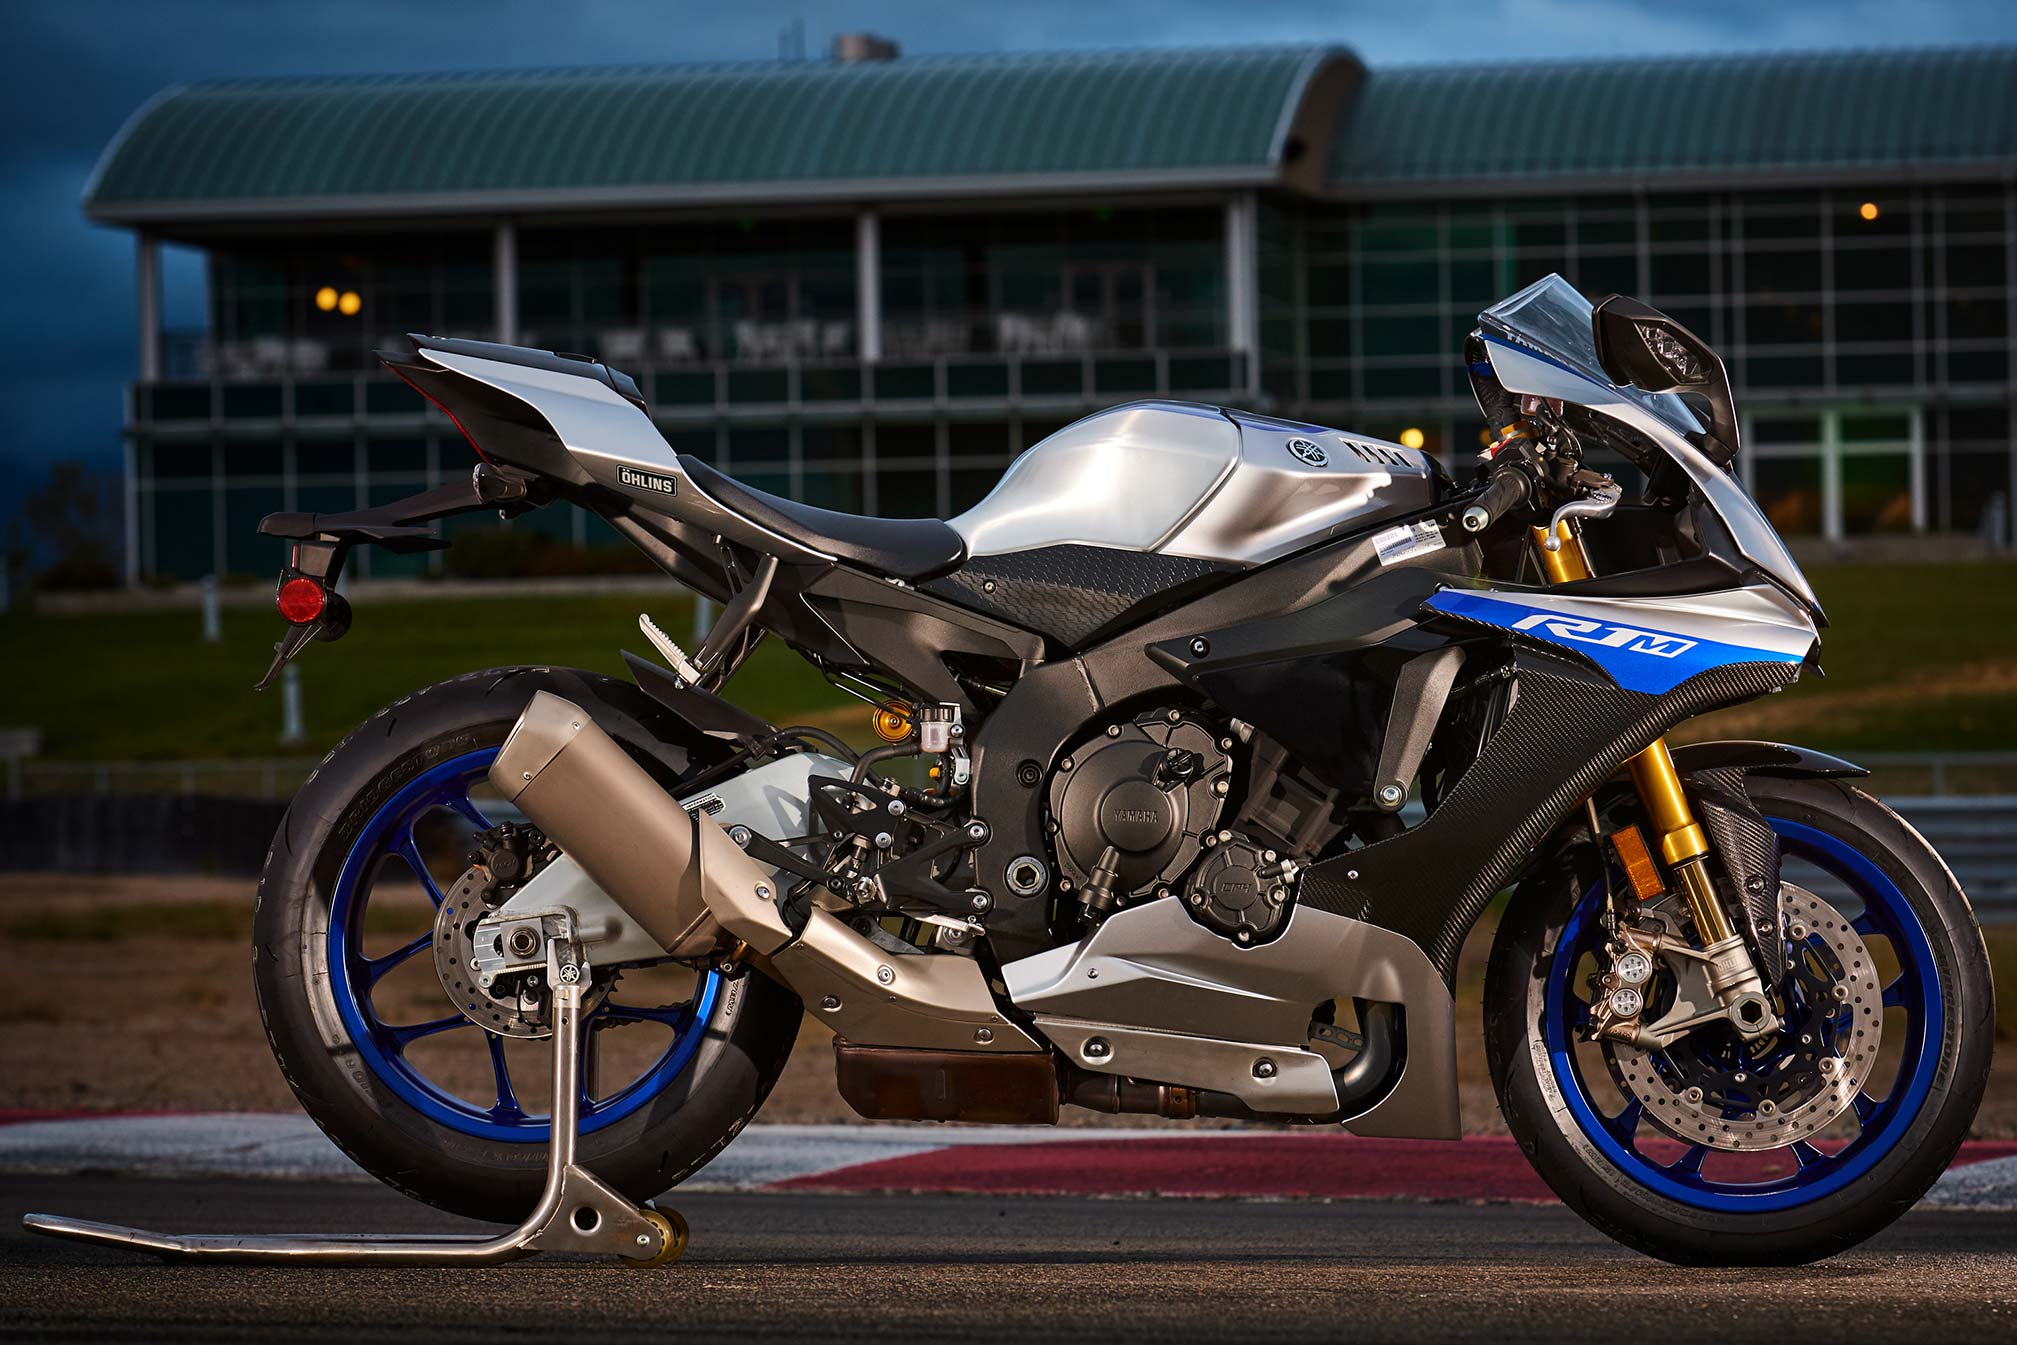 Fastest Car In The World Wallpaper 2017 Yamaha Yzf R1m Review